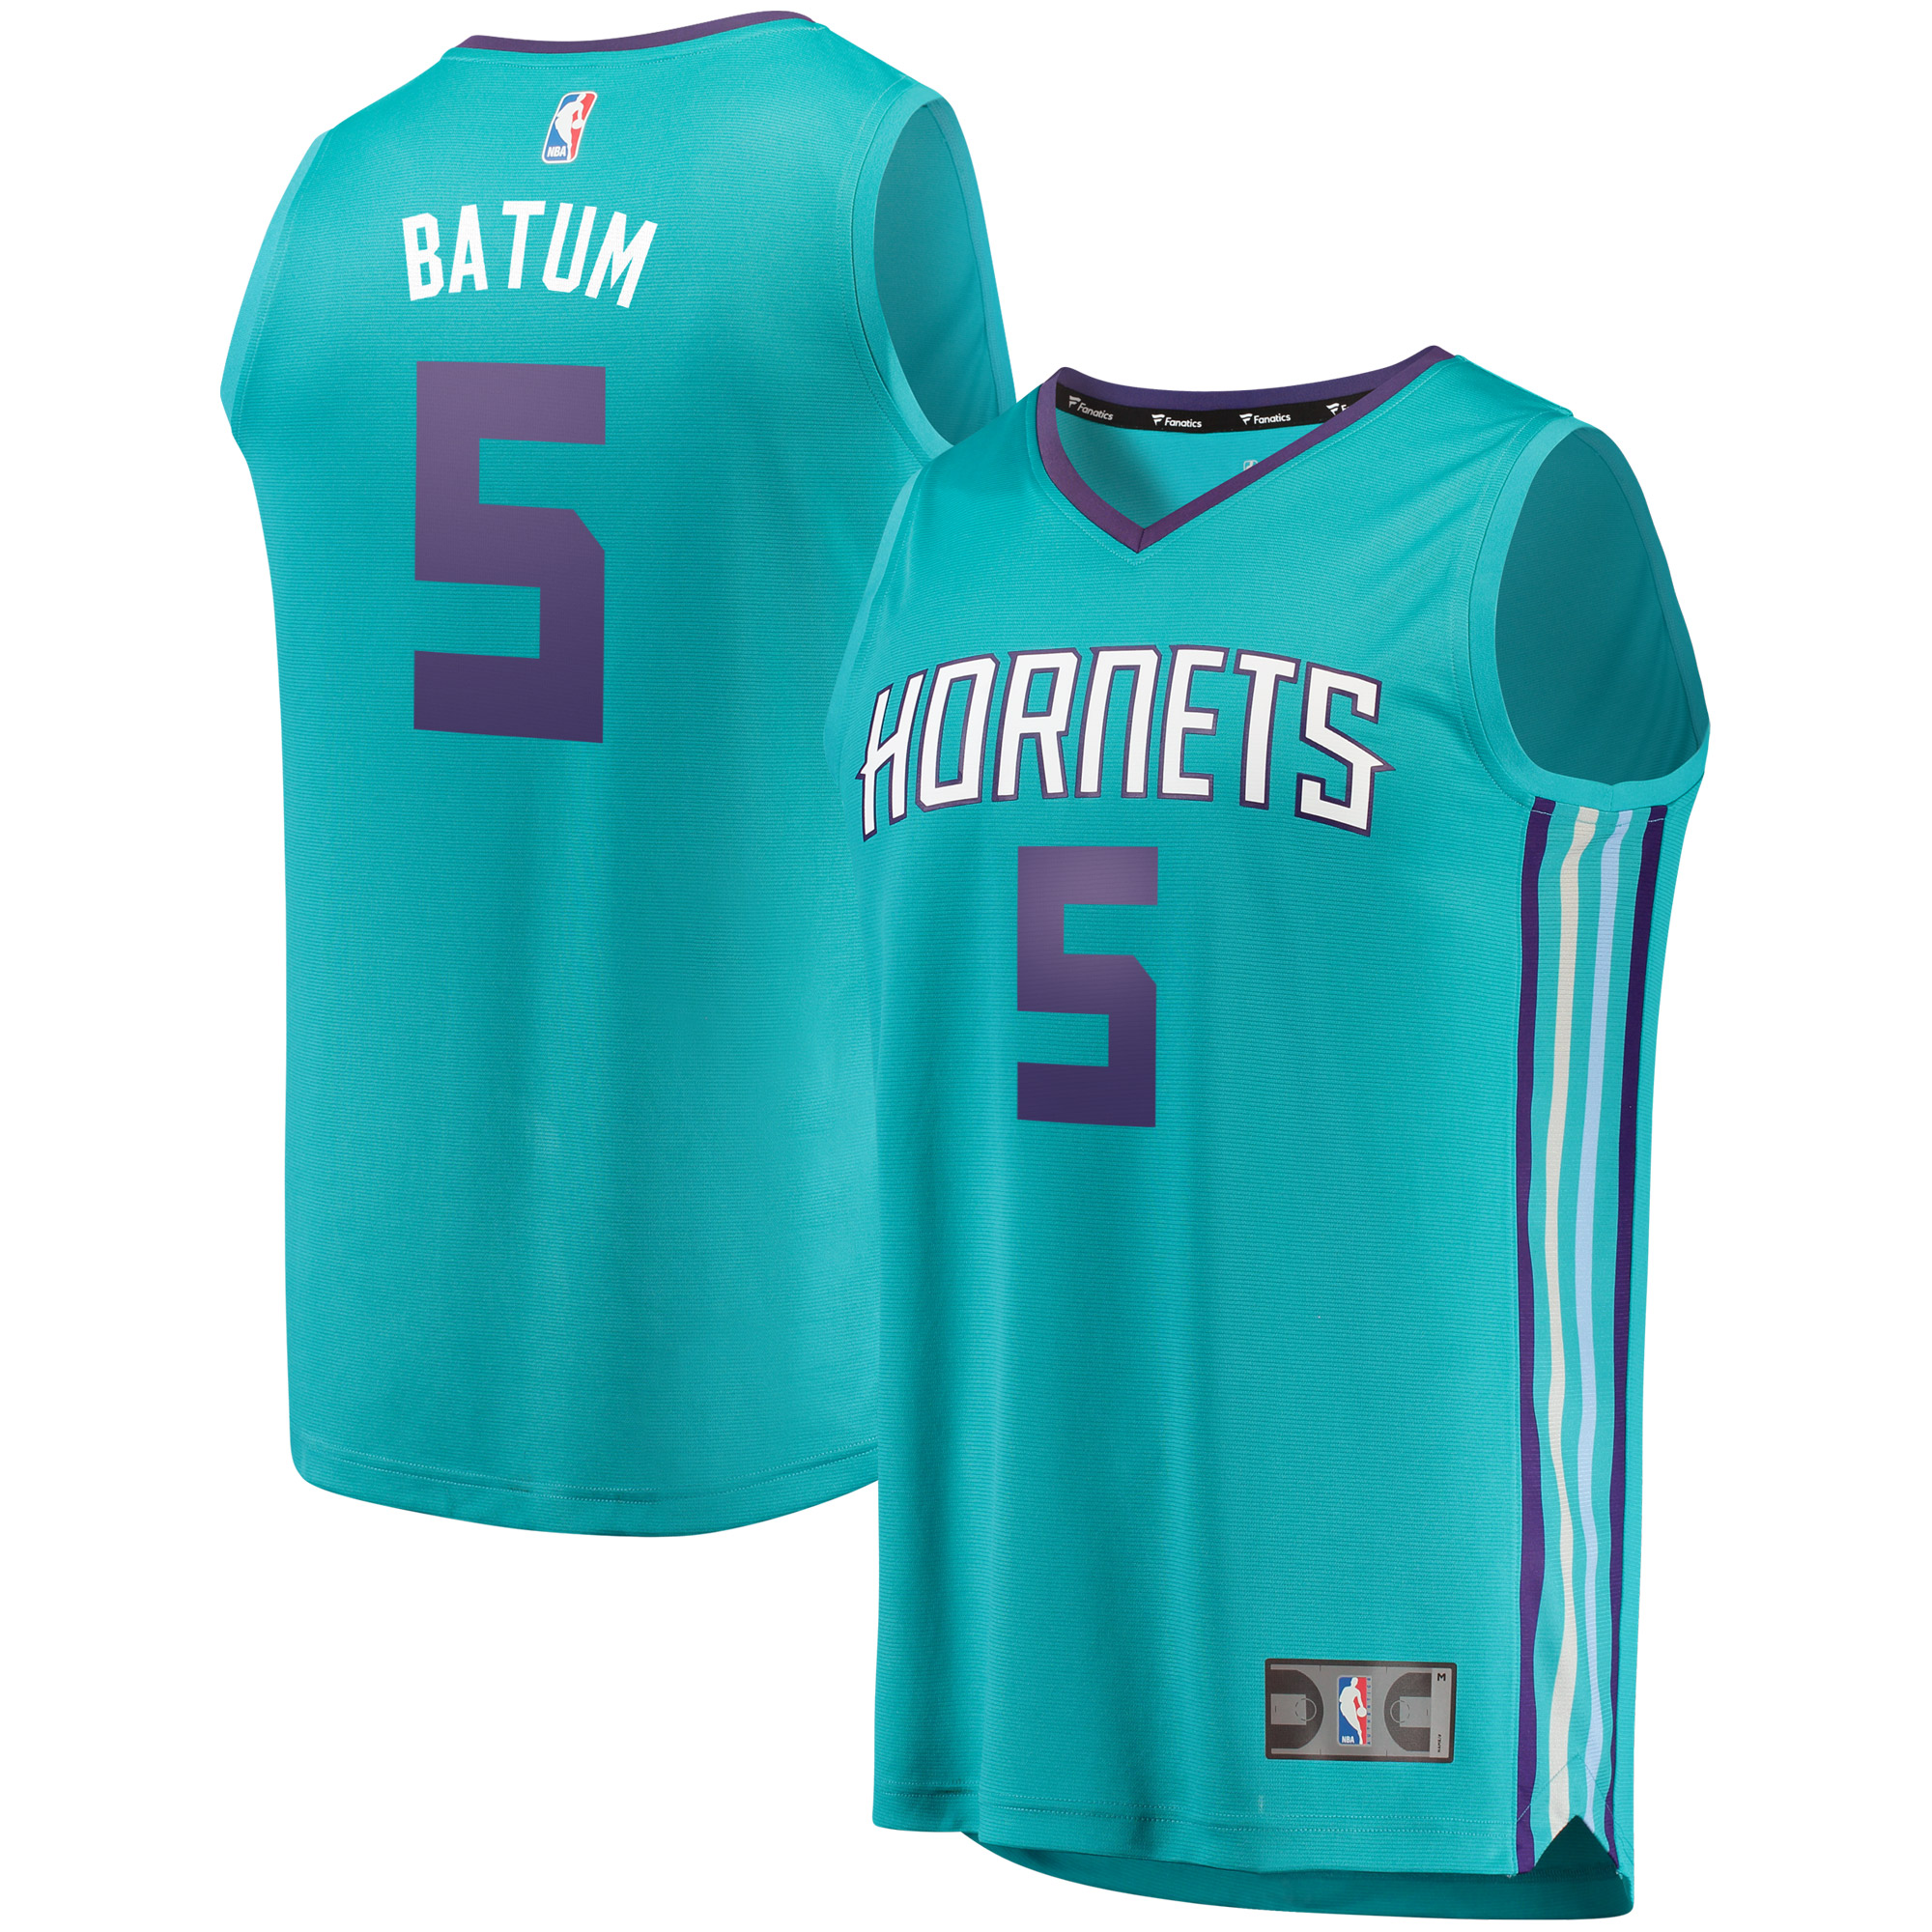 Nicolas Batum Charlotte Hornets Fanatics Branded Fast Break Replica Jersey Teal - Icon Edition